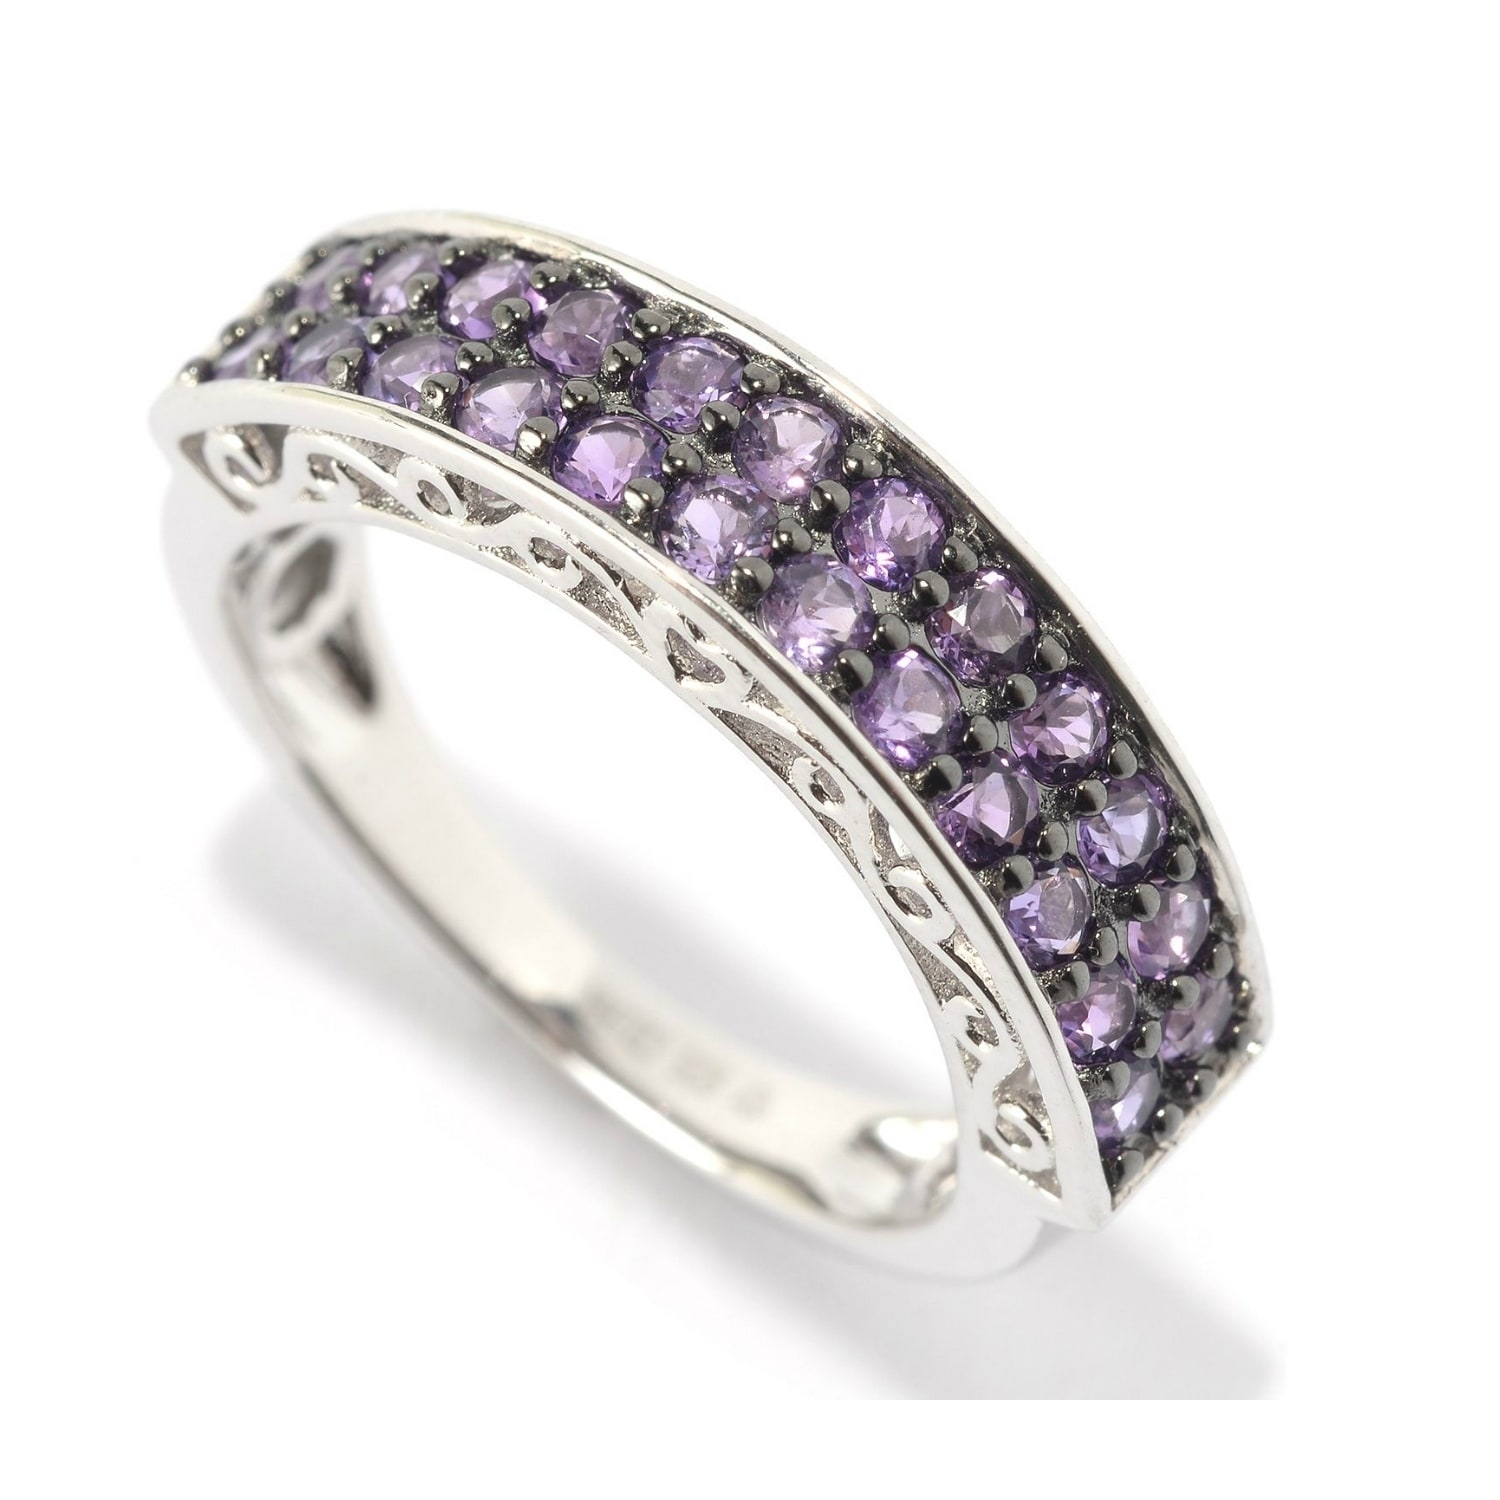 925 Sterling Silver Ring Natural Amethyst Fancy Setting Ring Amethyst Ring African Amethyst Ring Ring for Girls Purple Amethyst Ring